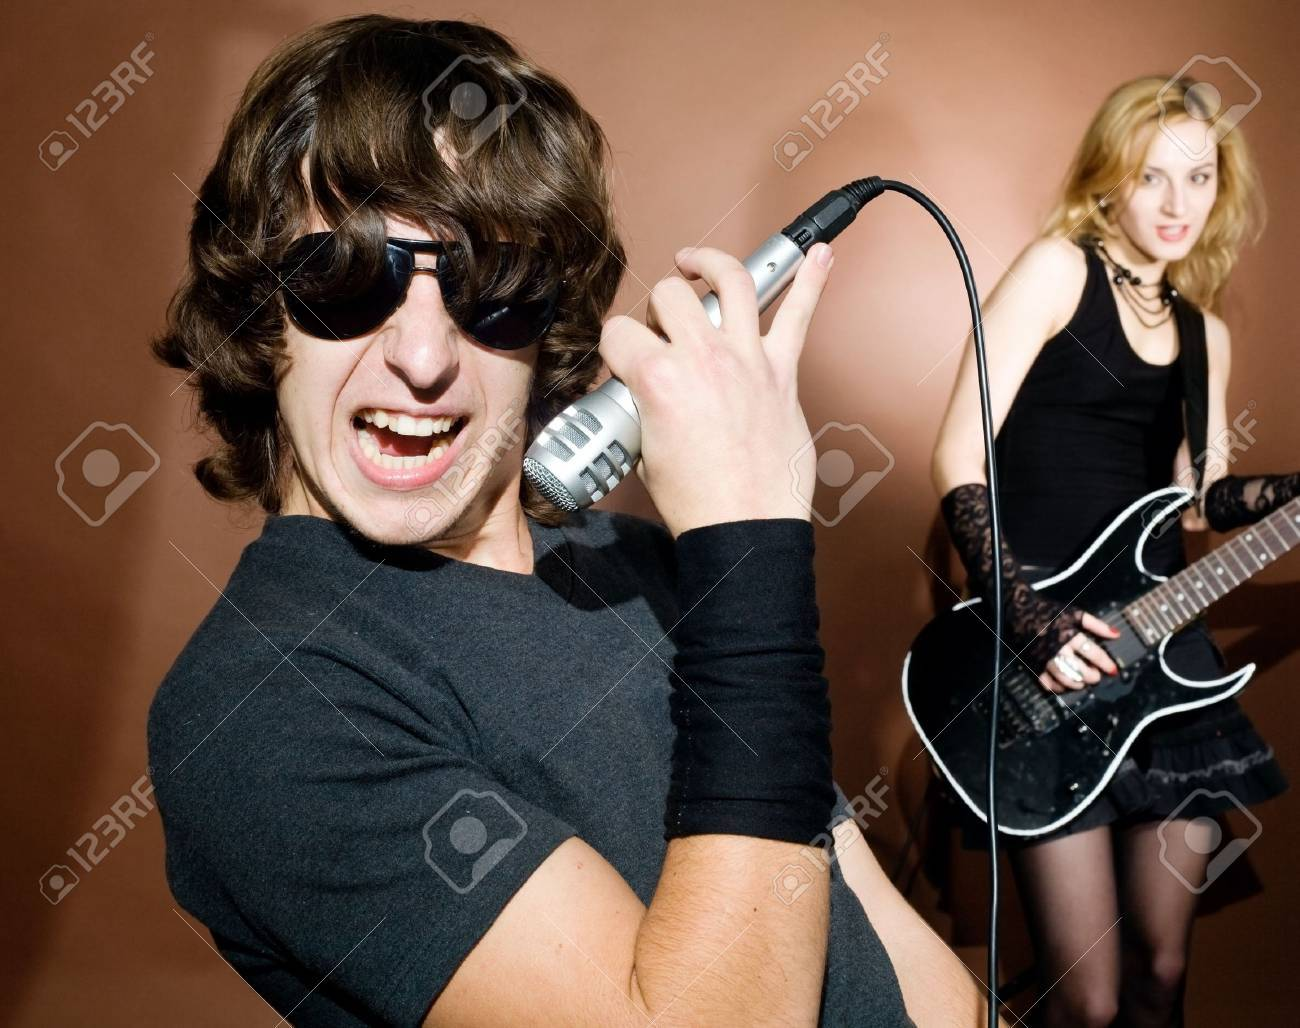 Rock singer with woman during in studio. Stock Photo - 5941848